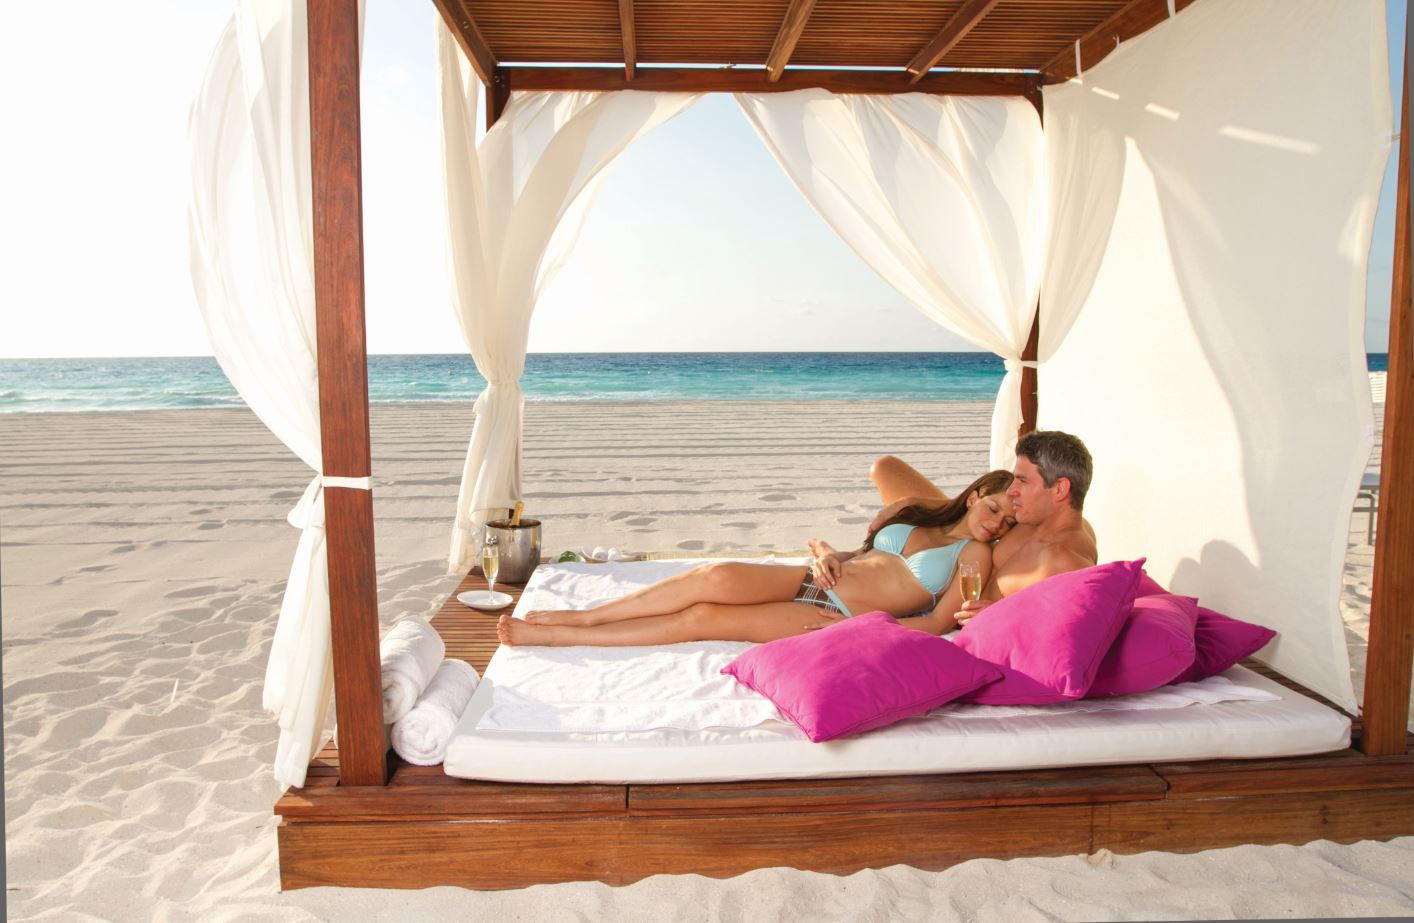 Best romantic resorts for couples for Spa weekend getaways for couples